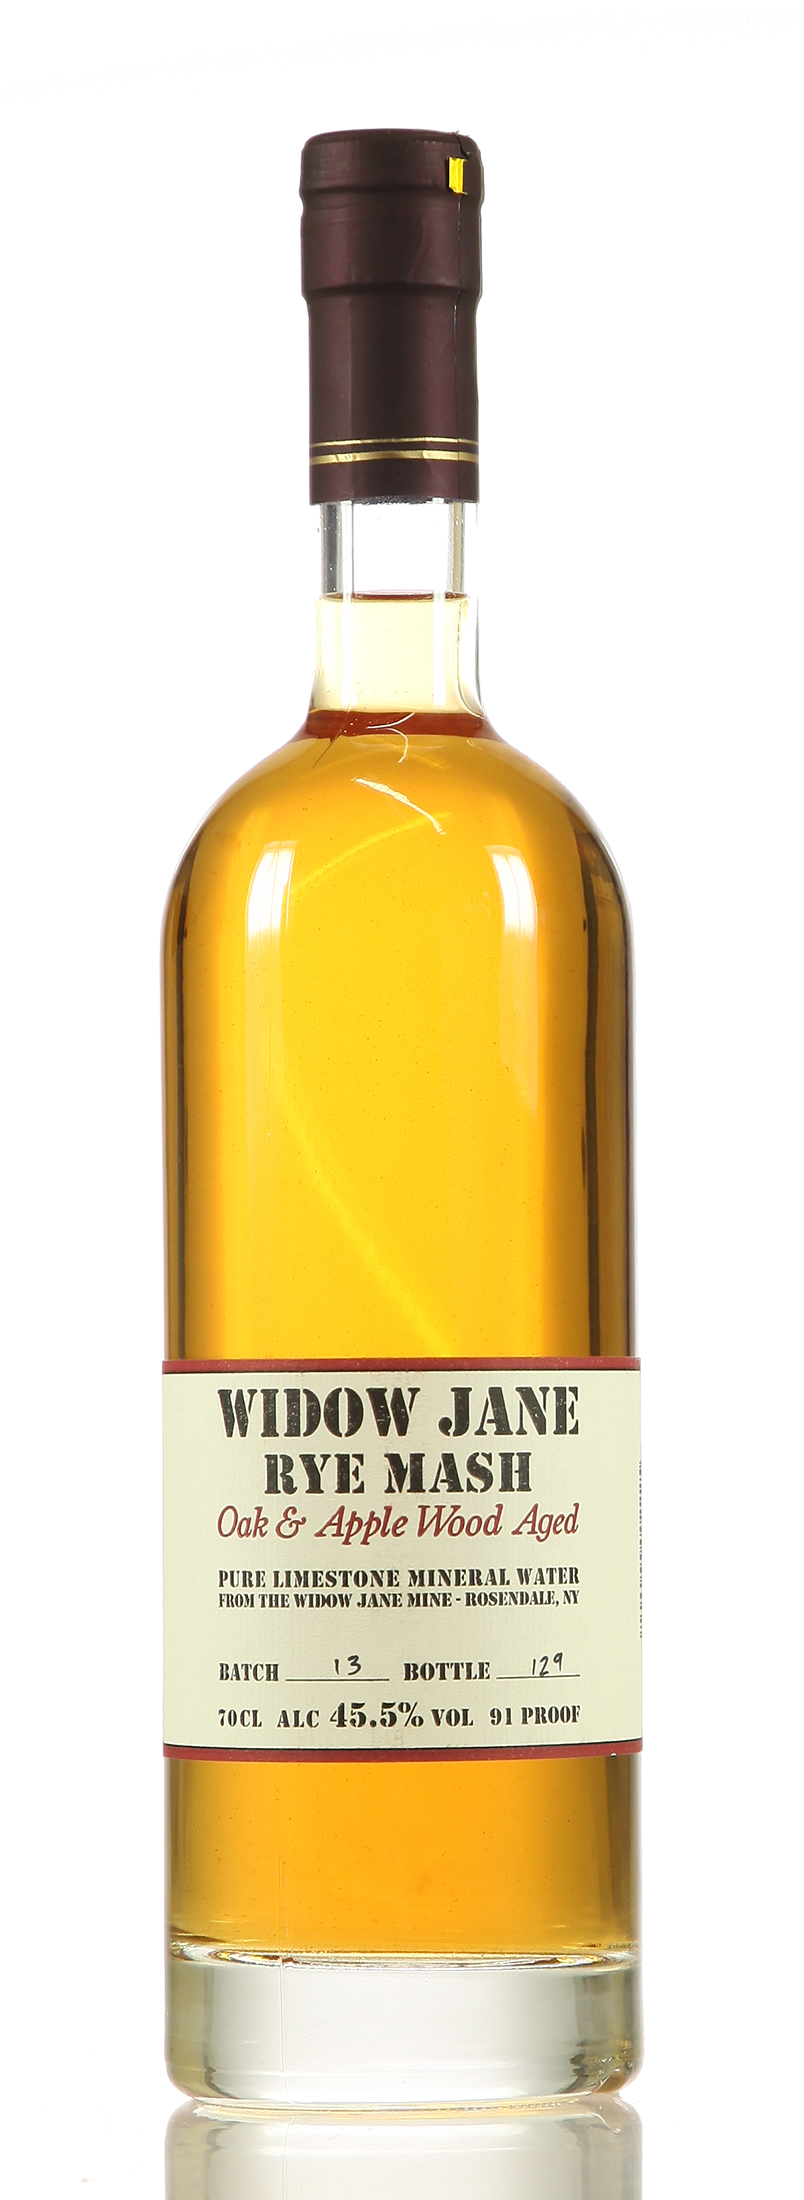 Widow Jane Rye Mash Applewood